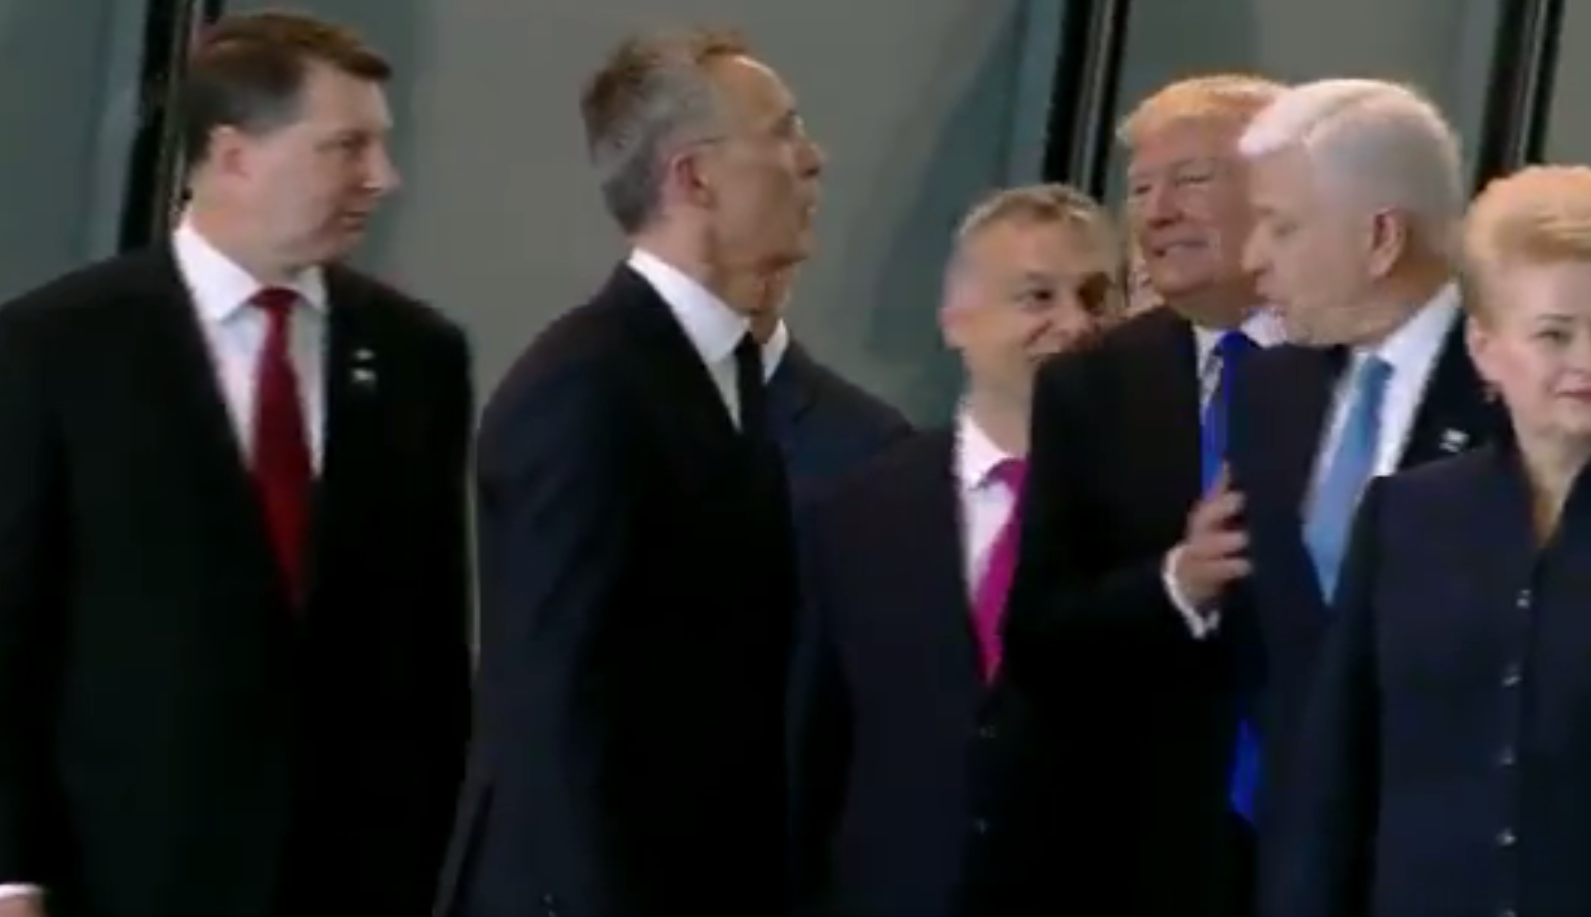 America first? Trump pushes aside Montenegro Prime Minster Markovic during NATO photocall